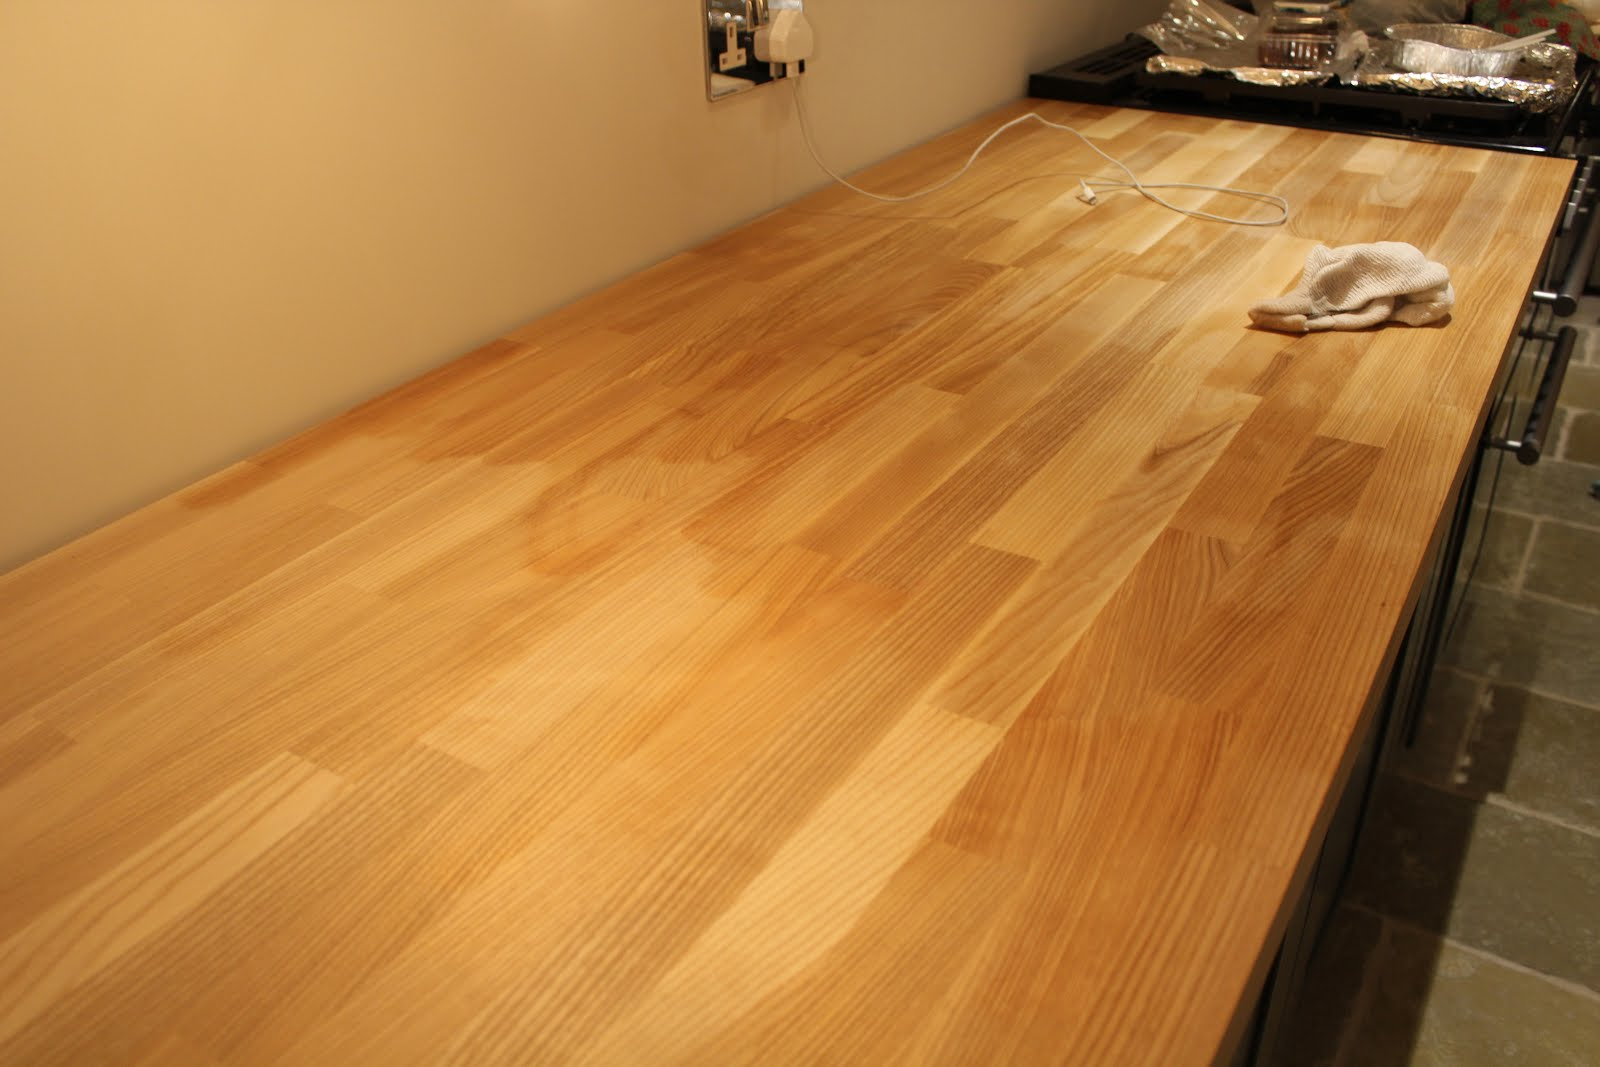 How to oil worktops